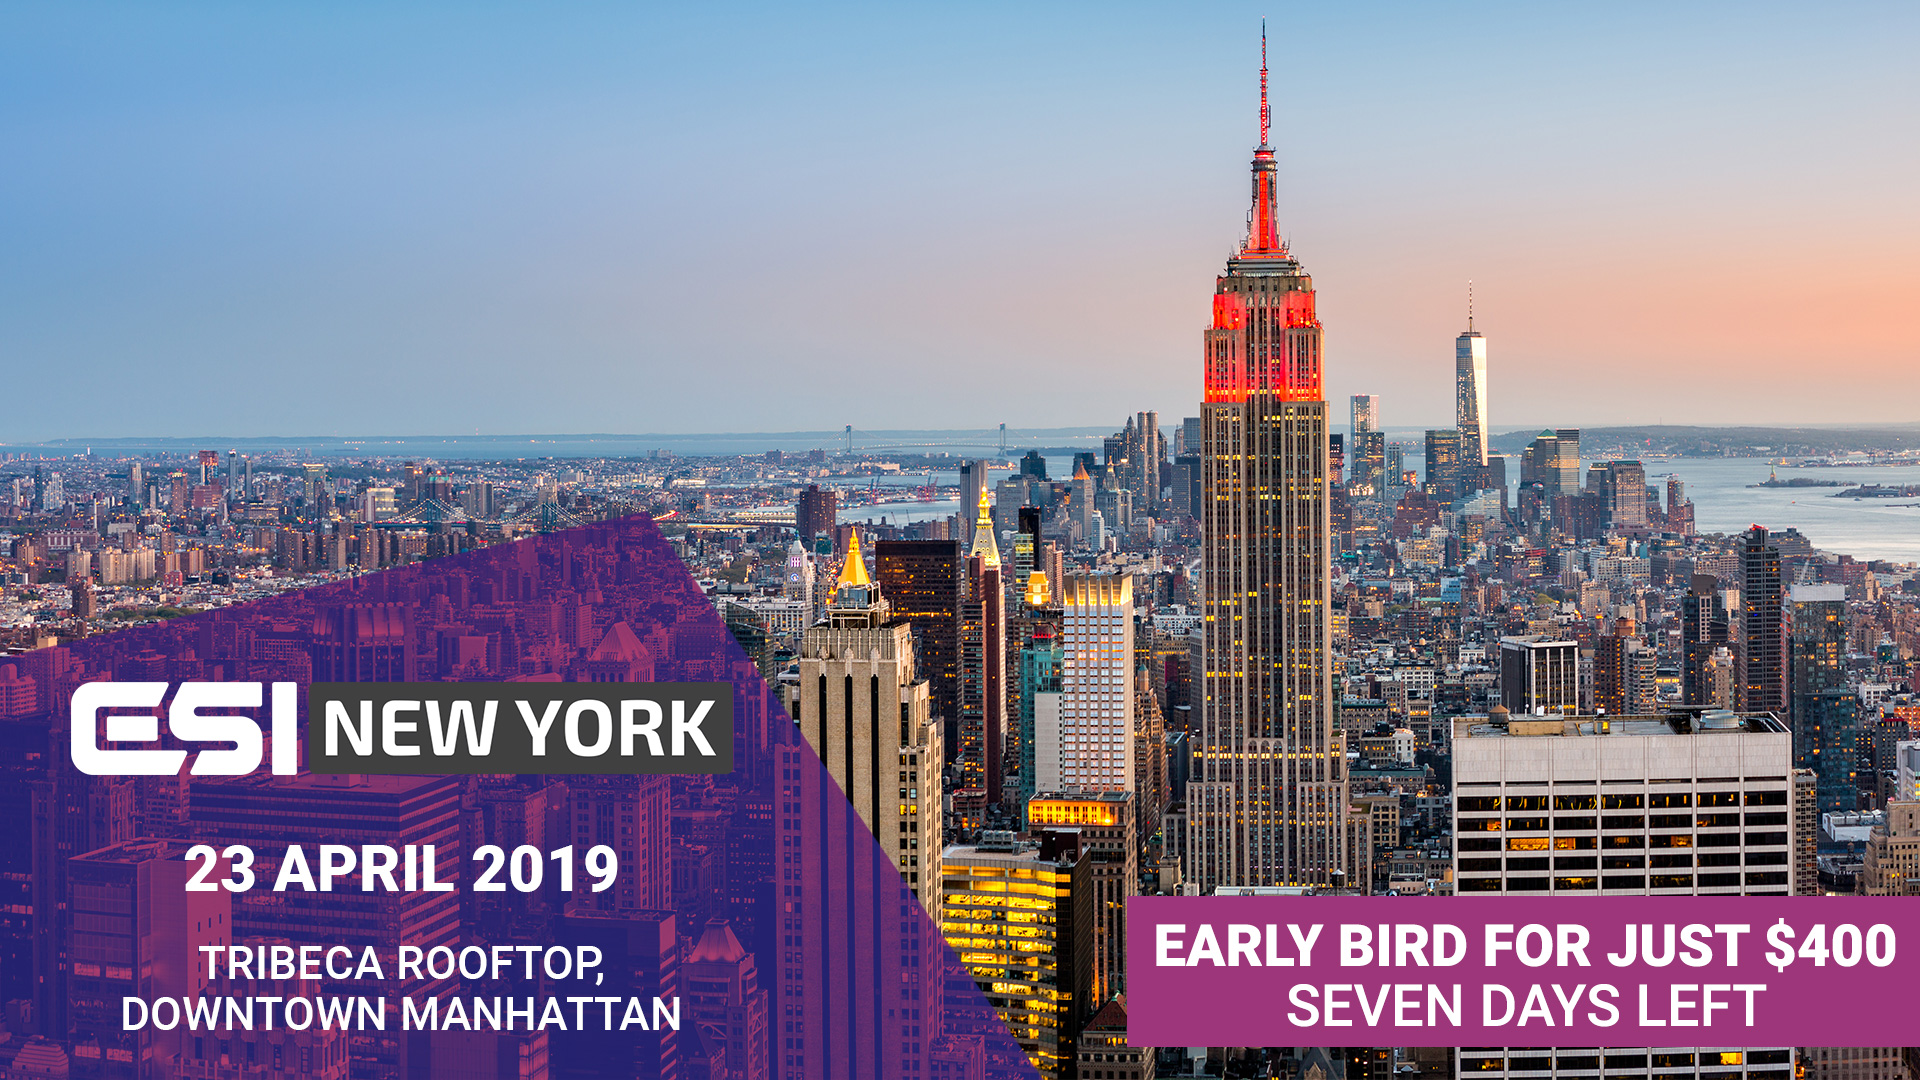 ESI NY PROMO 1920x1080px 7 - 5 reasons to secure your early bird #ESINYC tickets now